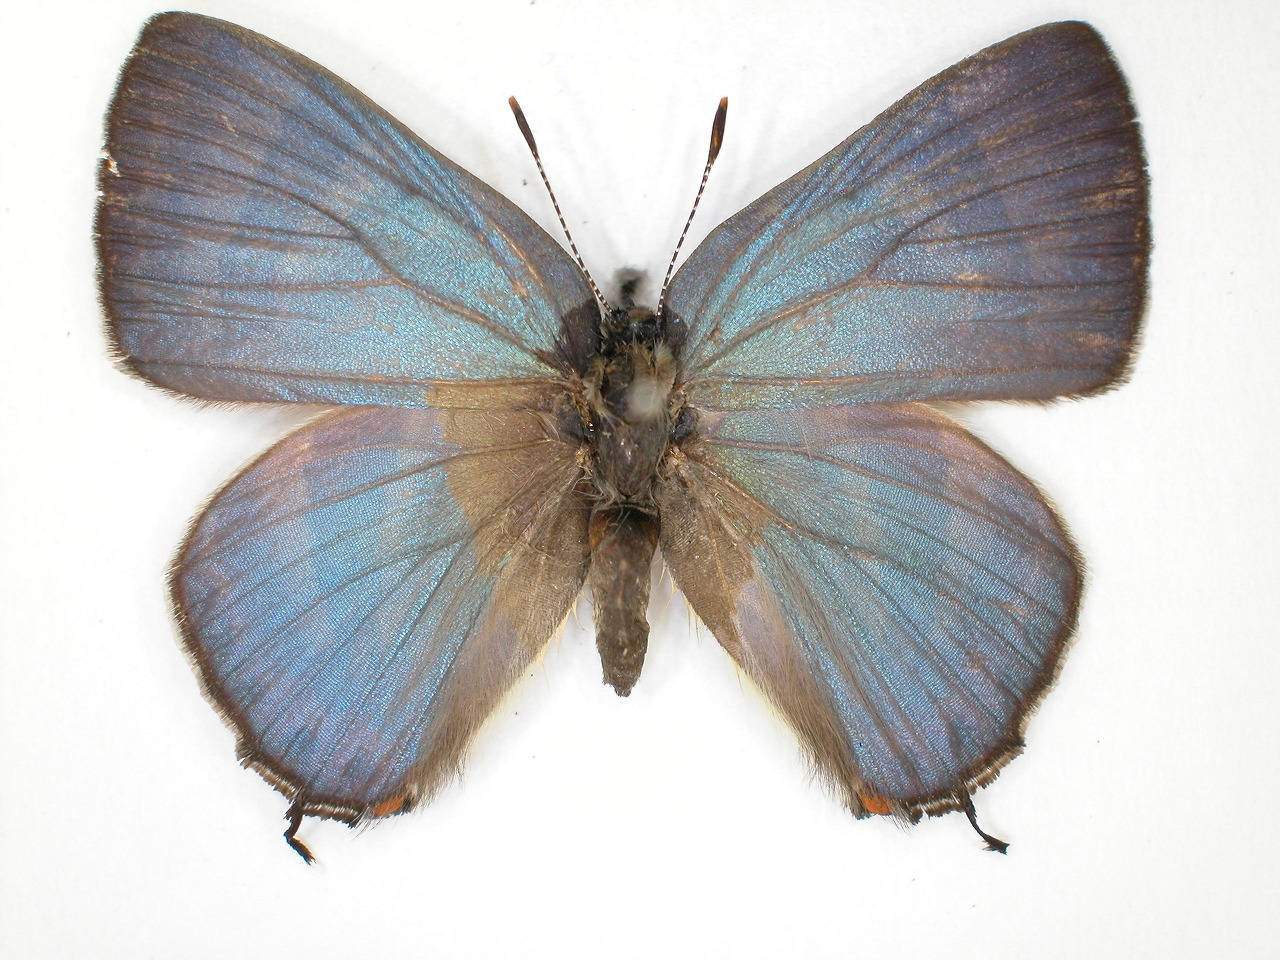 https://www.hitohaku.jp/material/l-material/butterfly-wing/5-lycaenidae/B1-638542_A.jpg